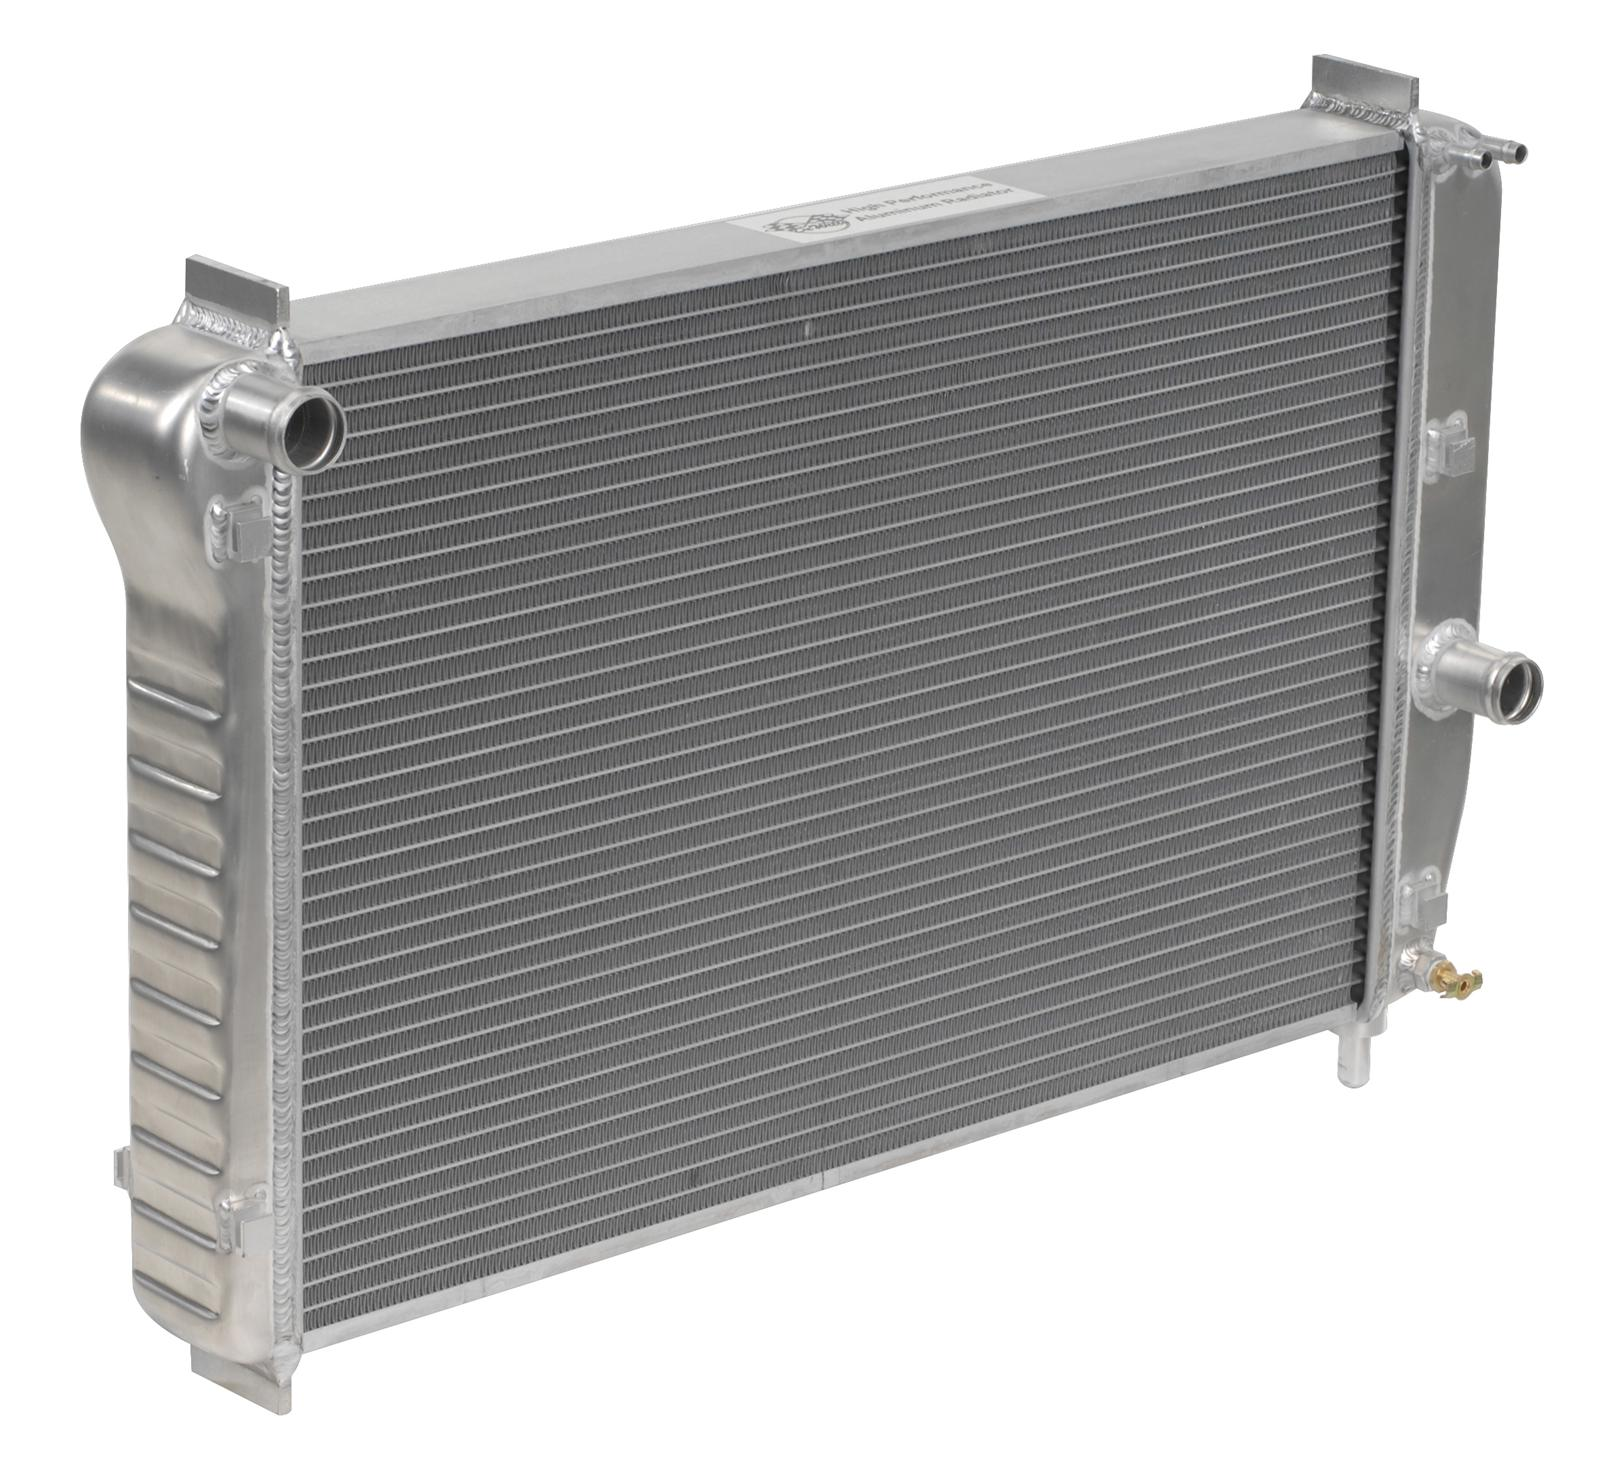 hight resolution of dewitts pro series radiators 32 1139097m free shipping on orders over 99 at summit racing